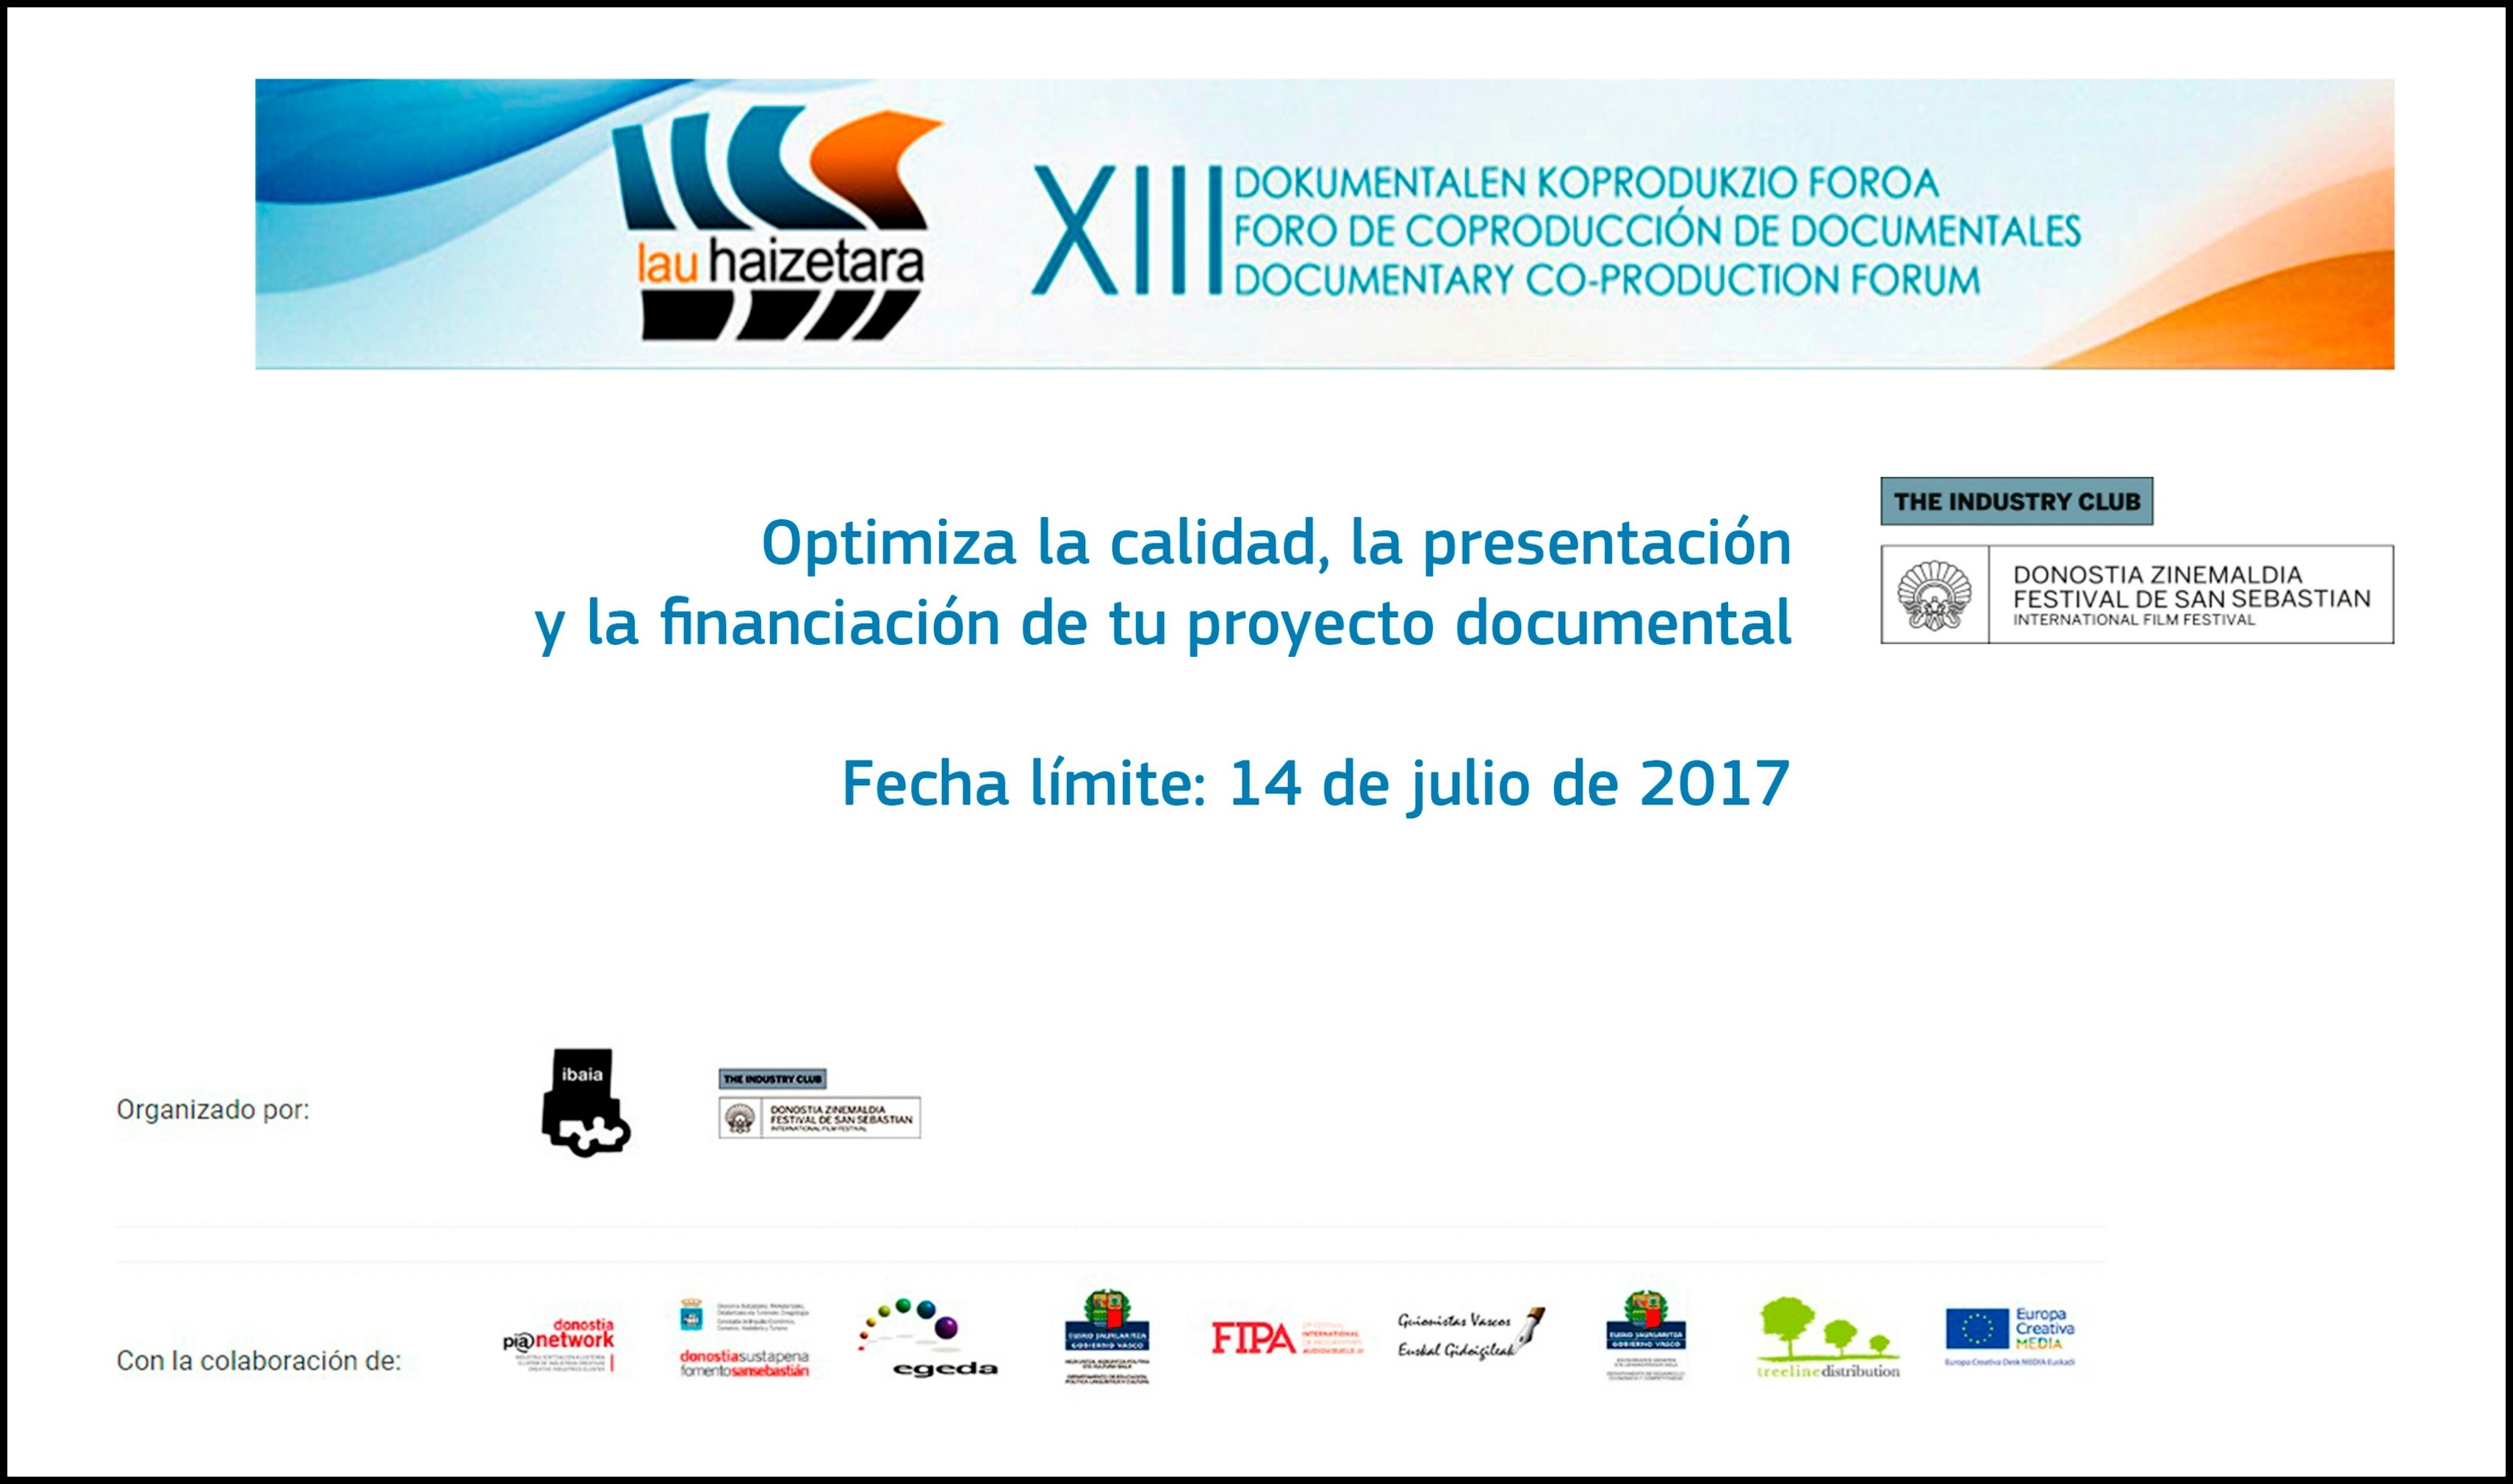 LAU HAIZETARA: Inscribe tu proyecto documental a este foro de coproducción de The Industry Club